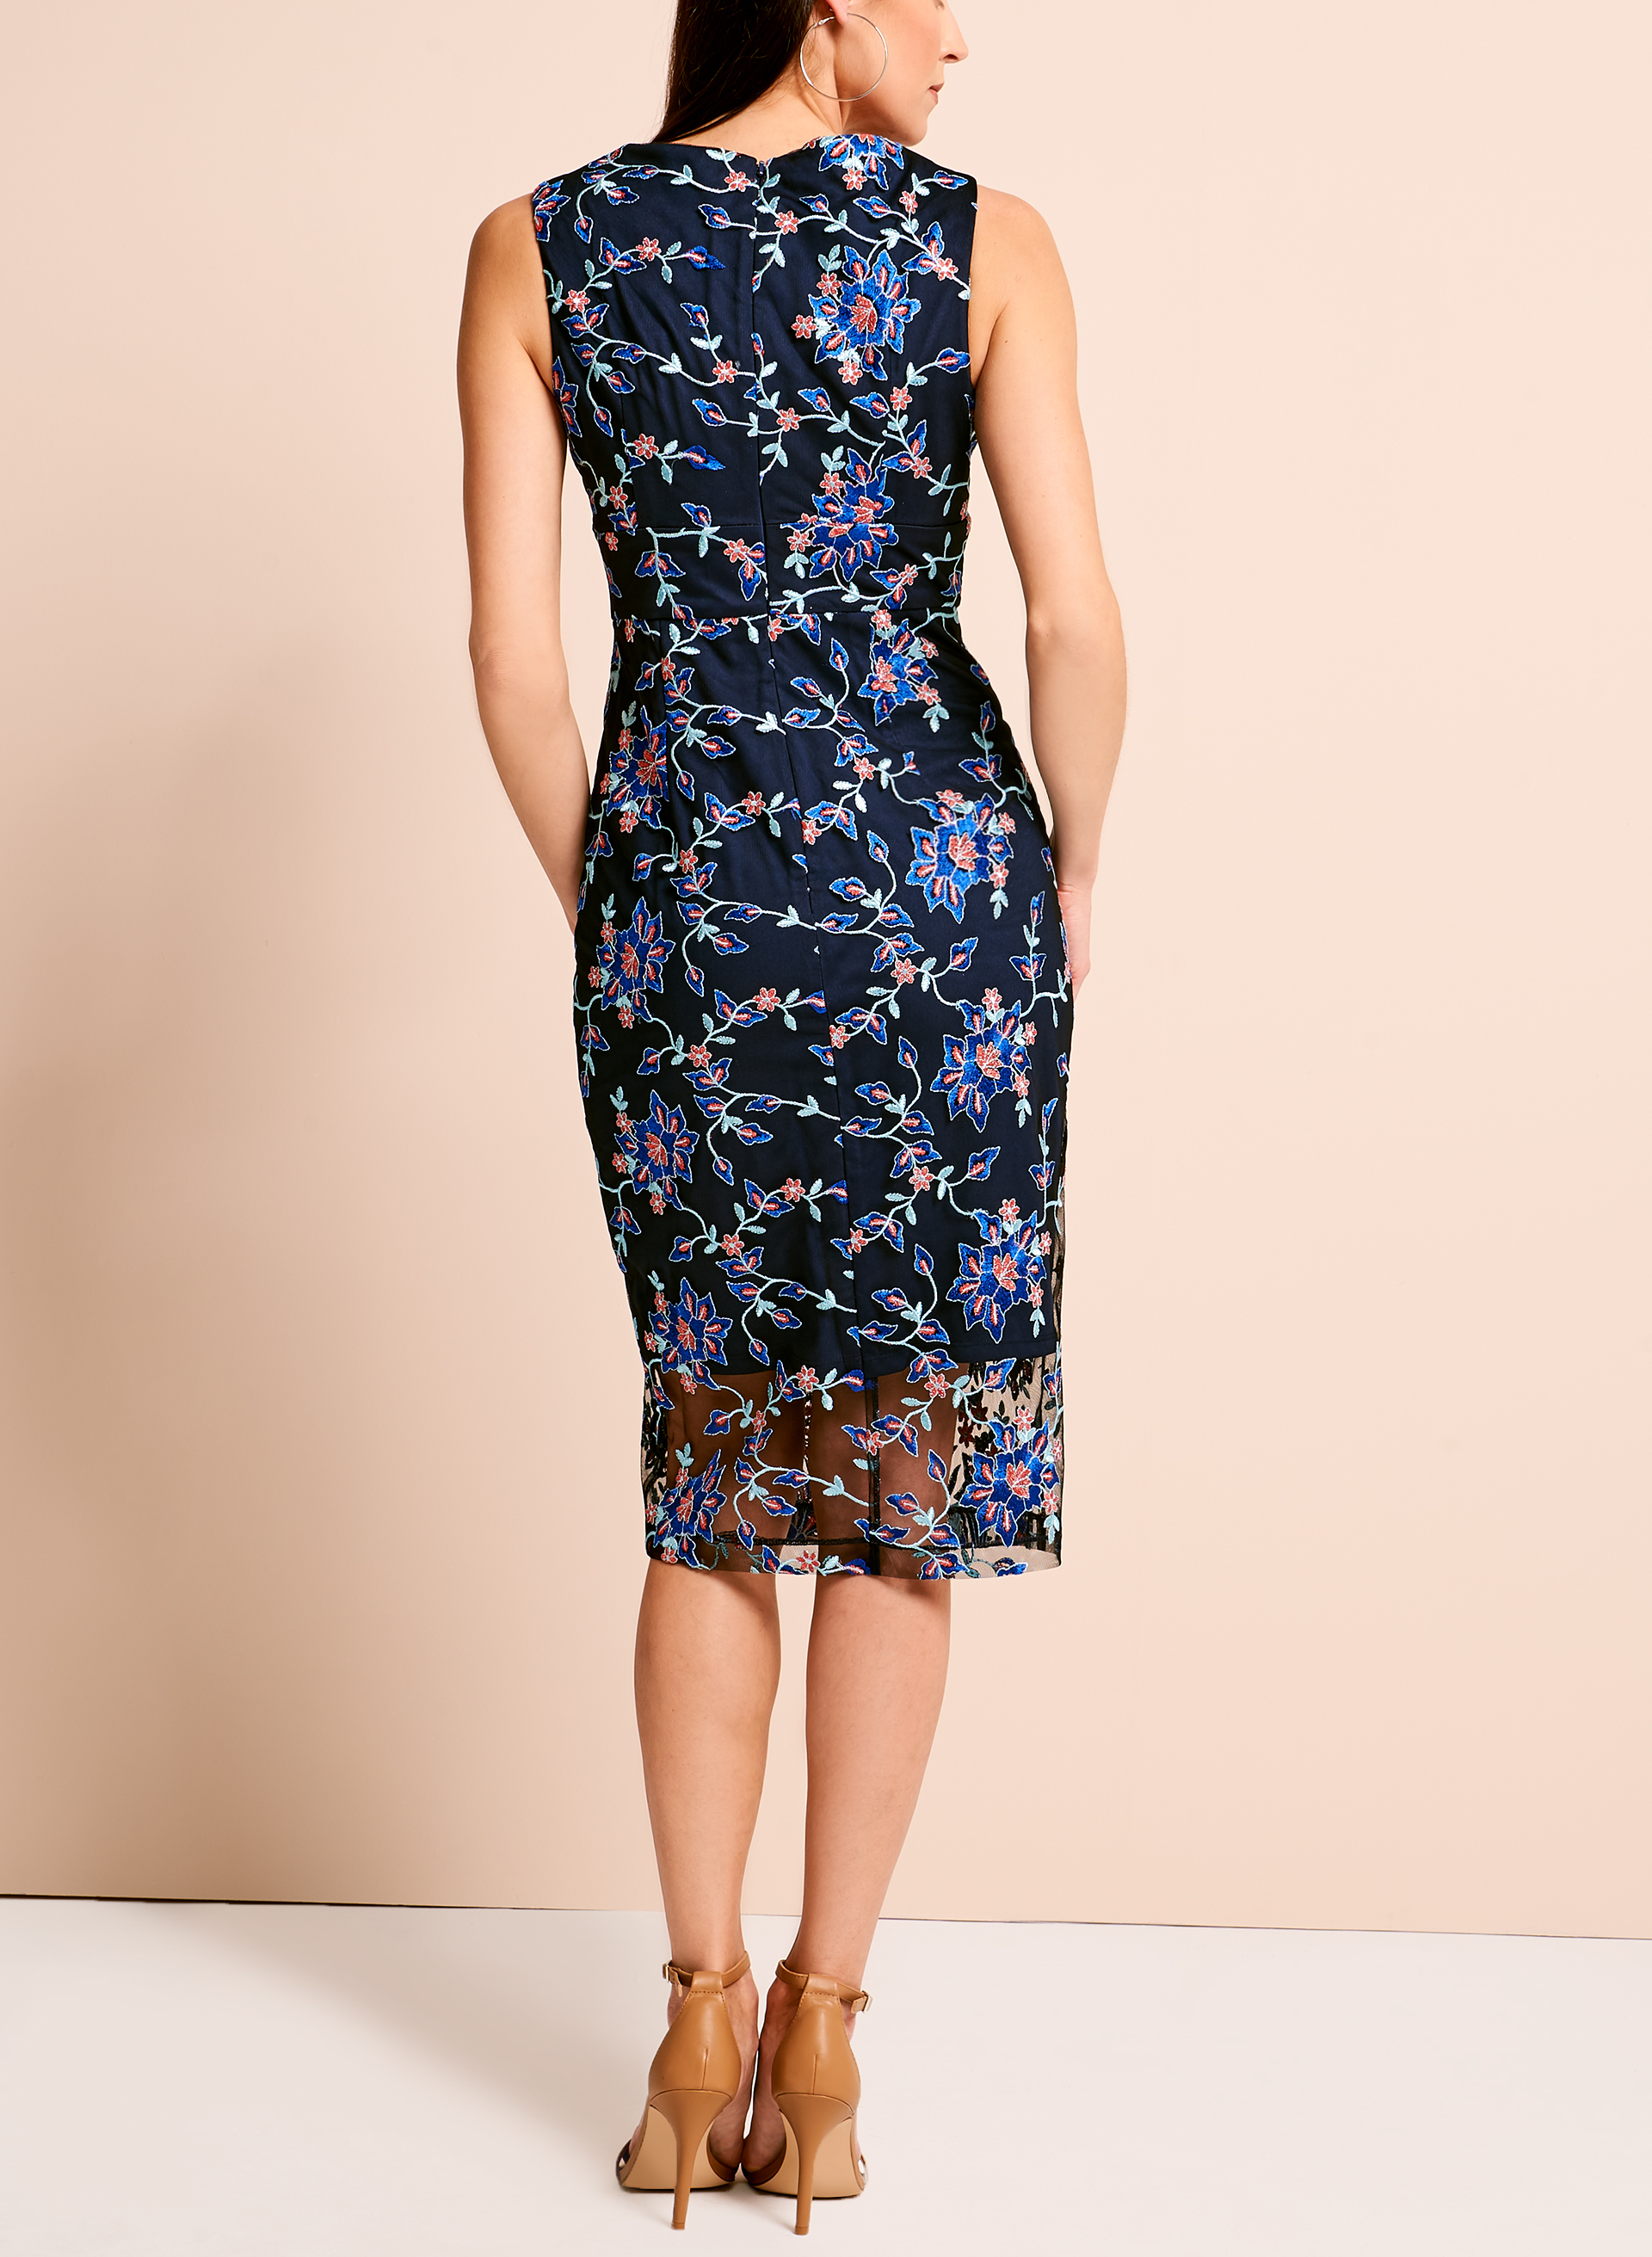 Jax floral embroidered mesh dress melanie lyne